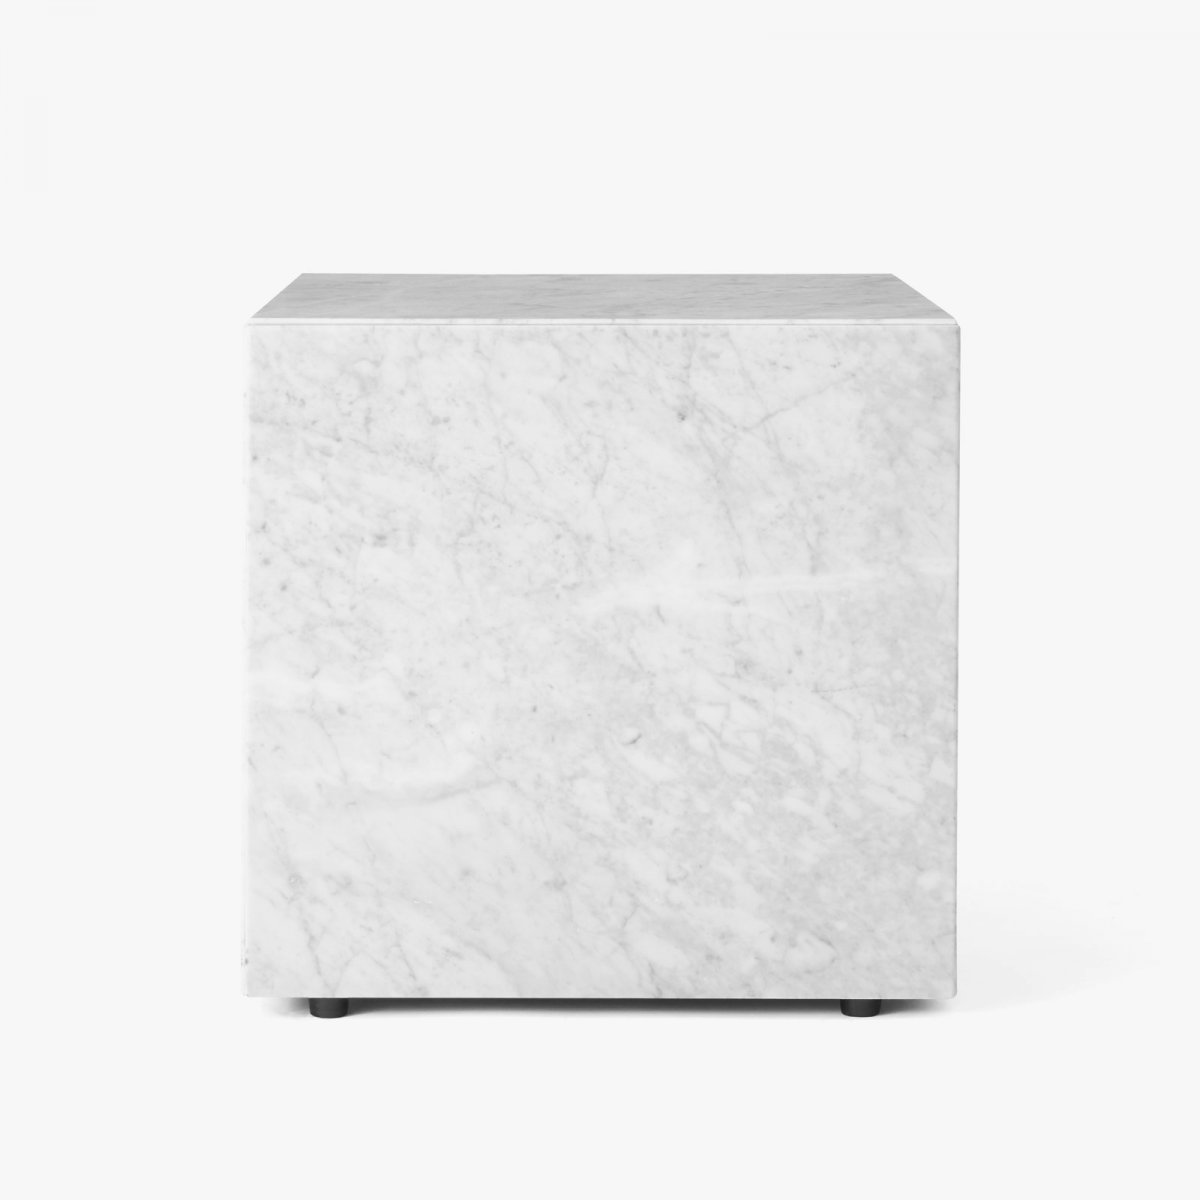 Plinth, Cubic side table, white.